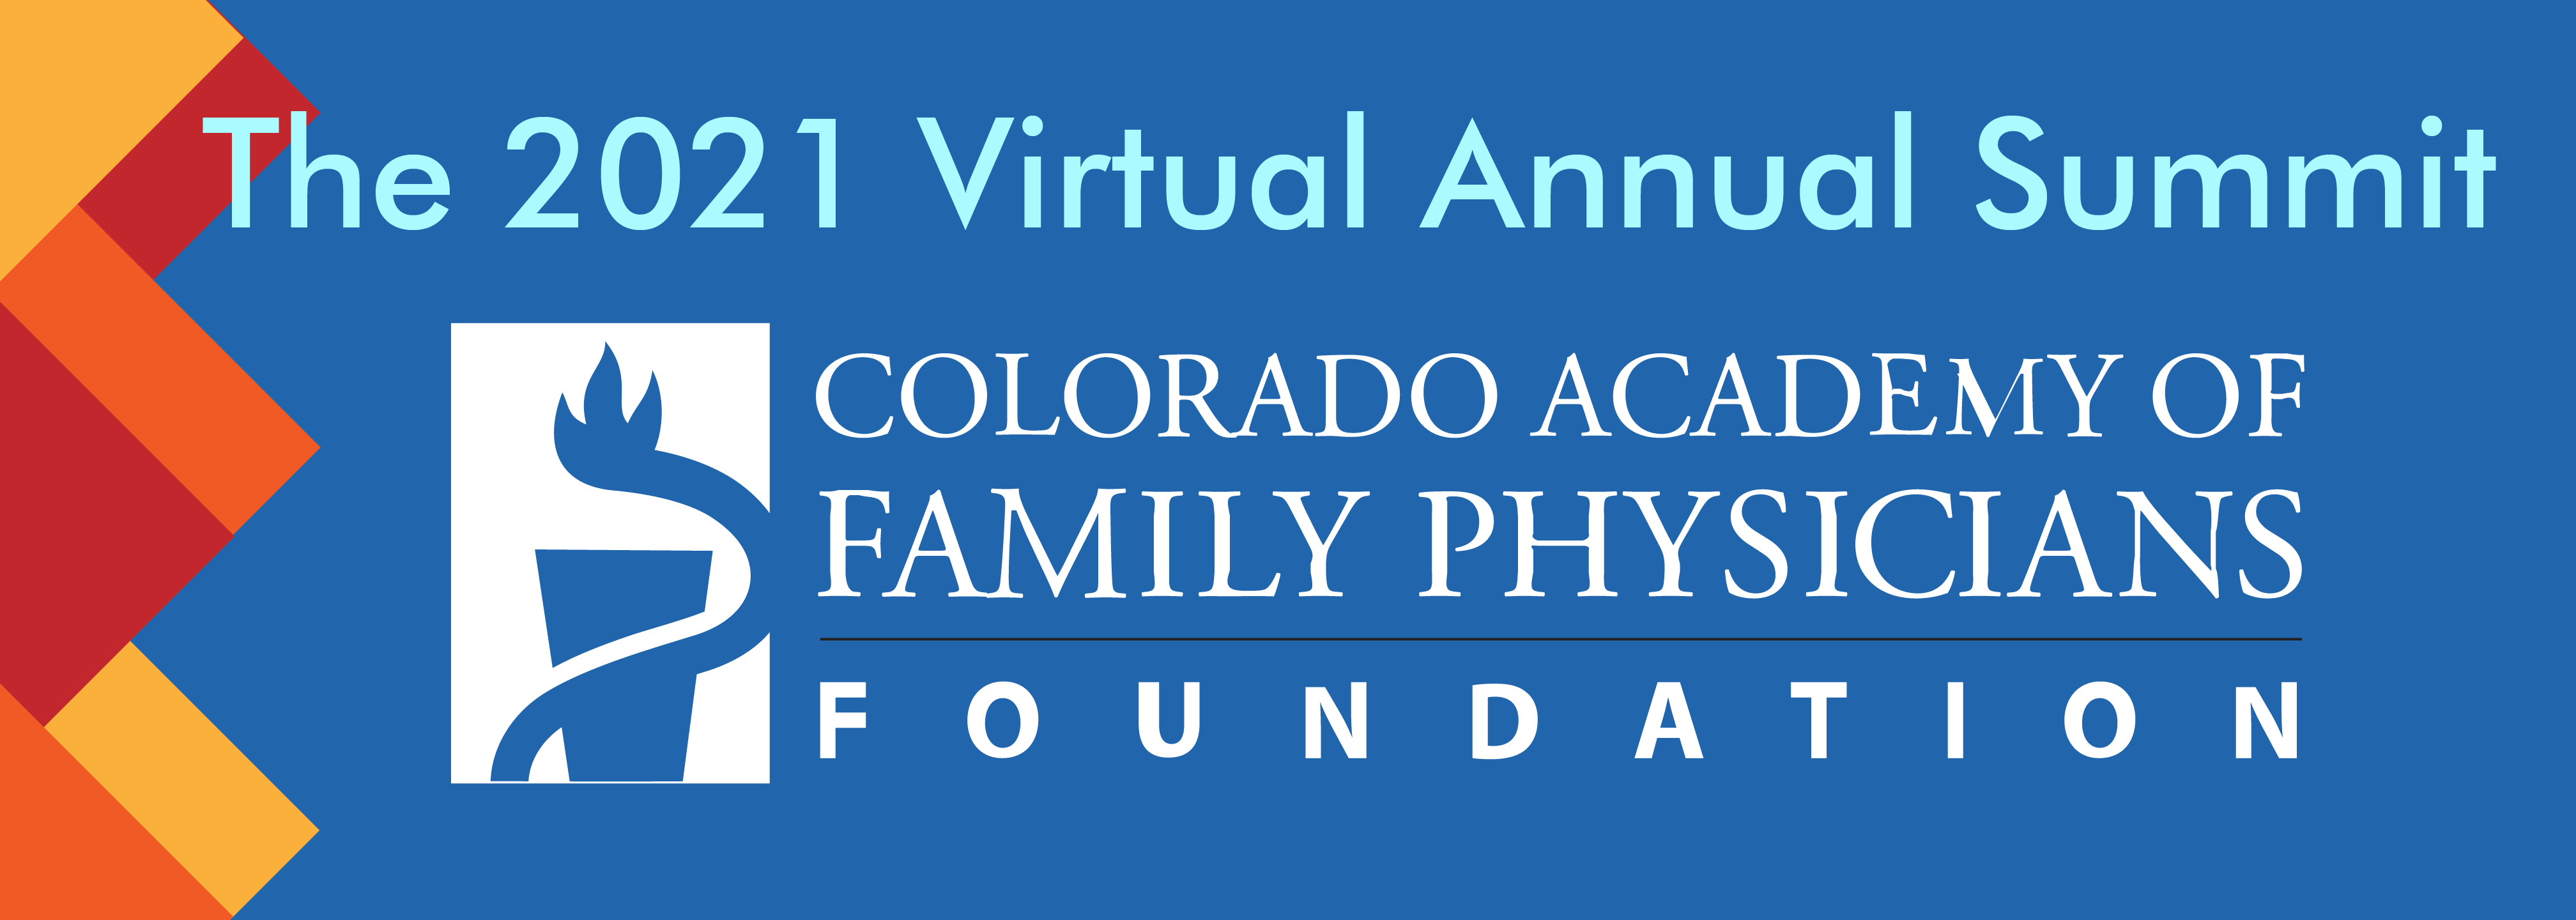 The logo for the 2021 CAFP Foundation Virtual Annual Summit